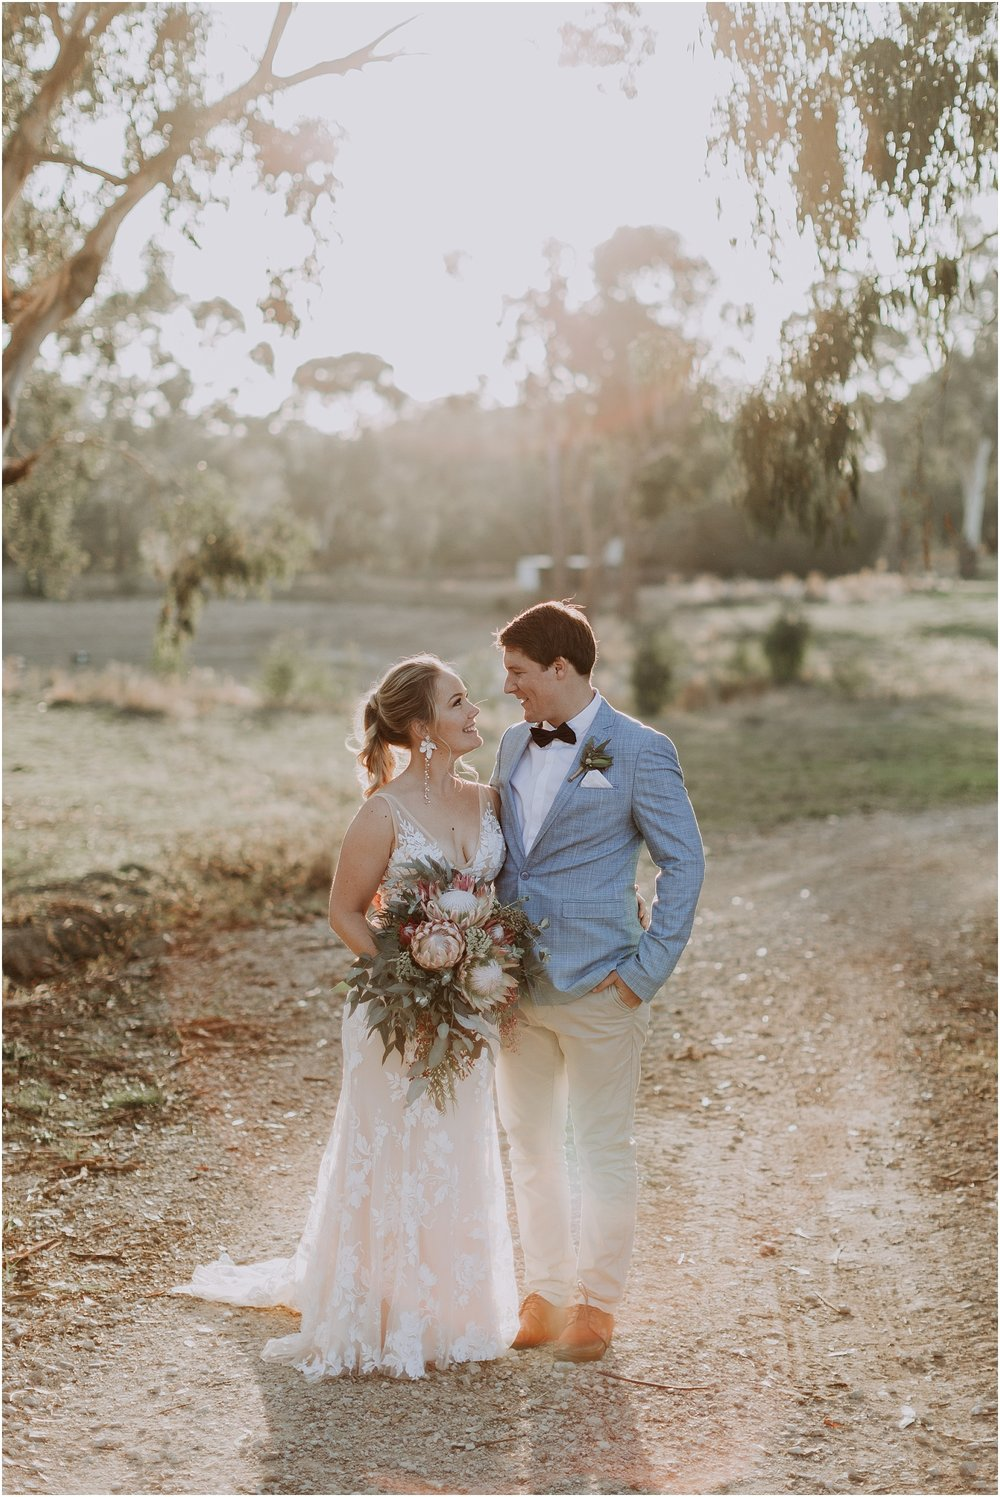 Lacey and Warwick's Yarra Valley winery wedding at Vines Helens Hill._0068.jpg